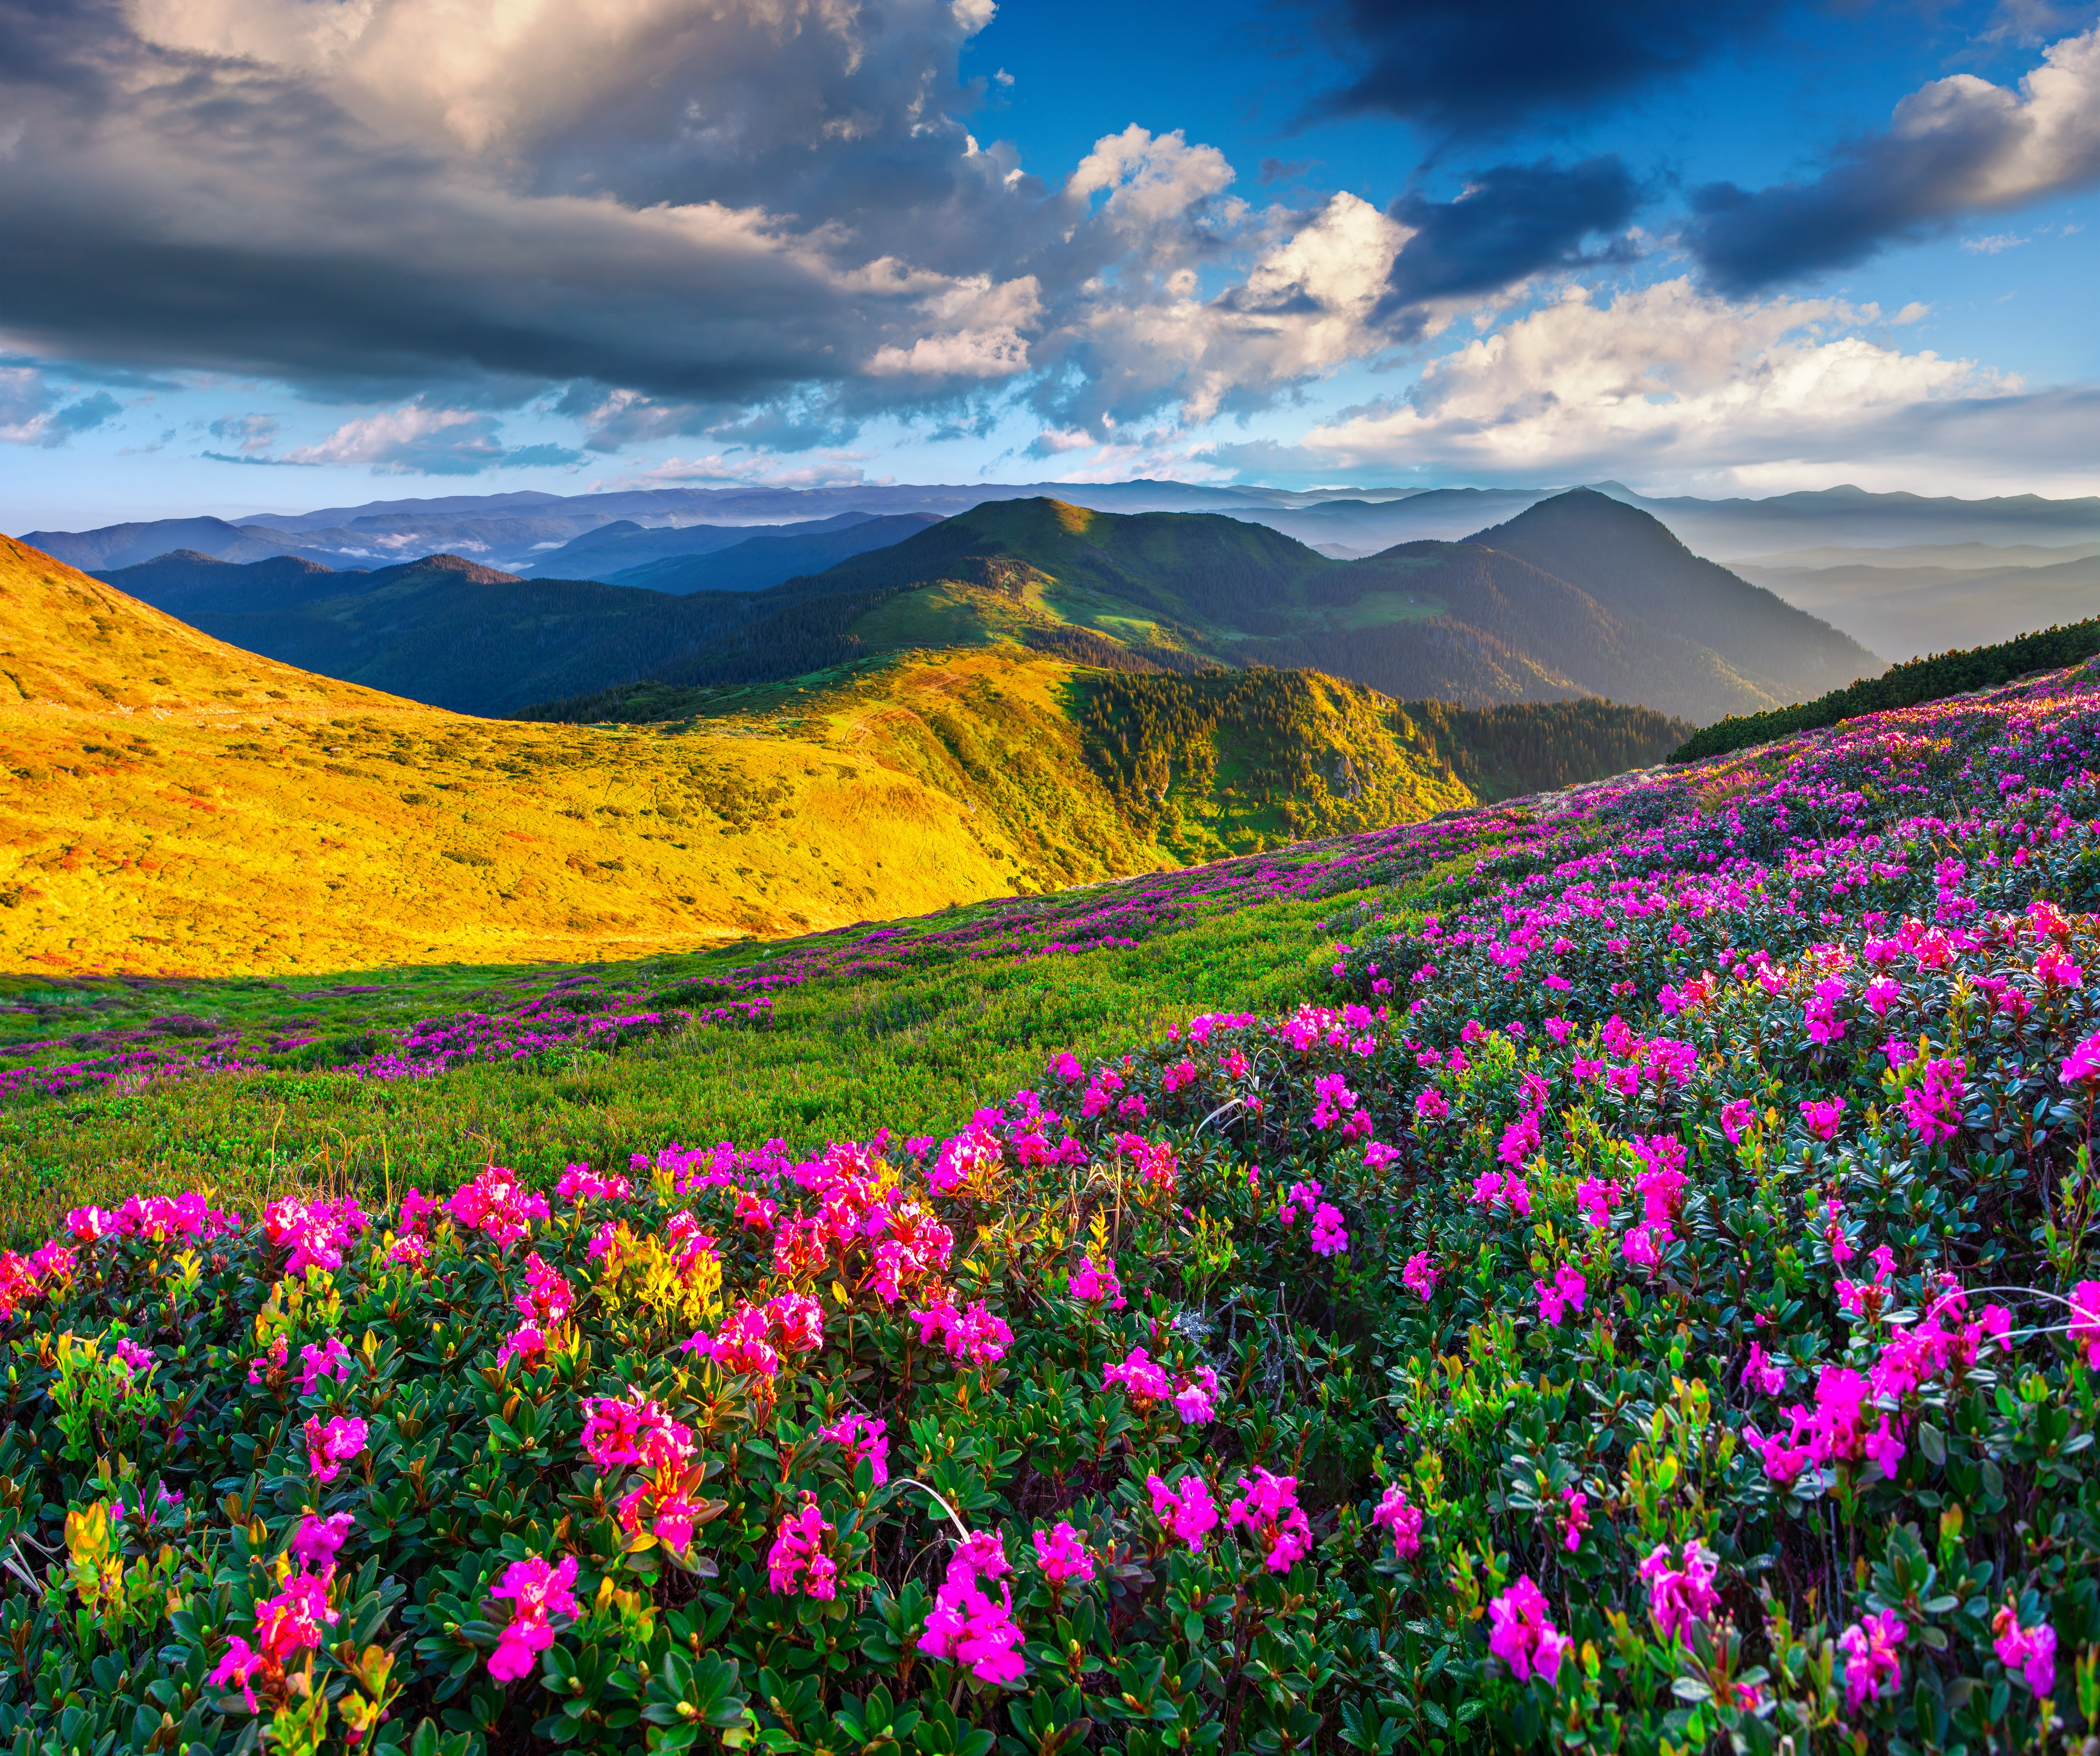 download wallpaper the sky the sun flowers mountains spring